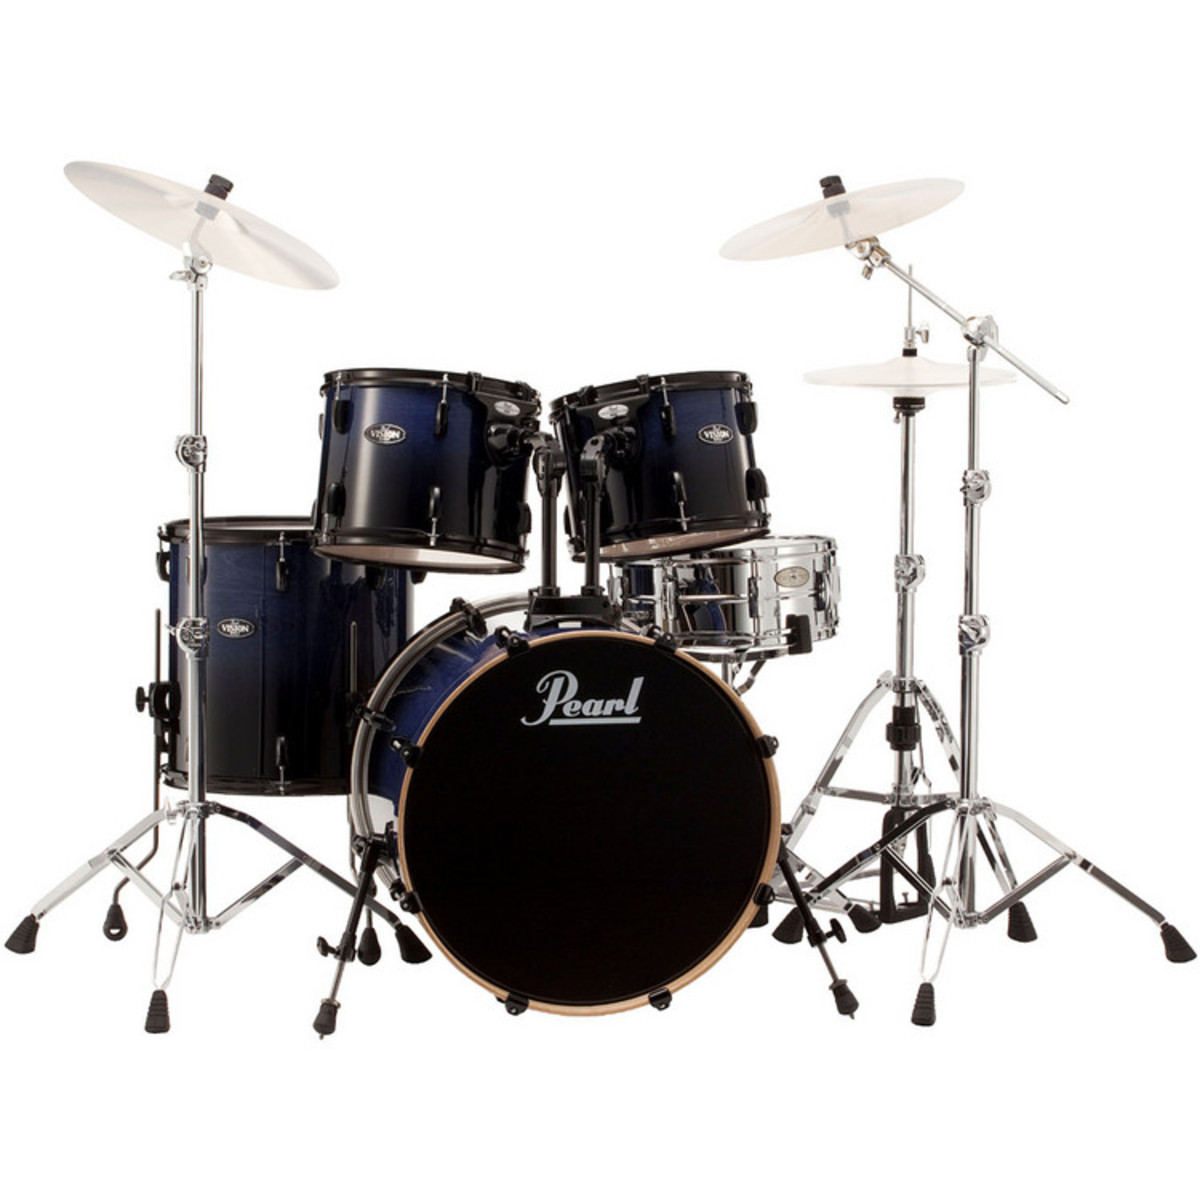 disc pearl vision birch lacquer vbl 22 39 39 fusion drum kit concord at. Black Bedroom Furniture Sets. Home Design Ideas